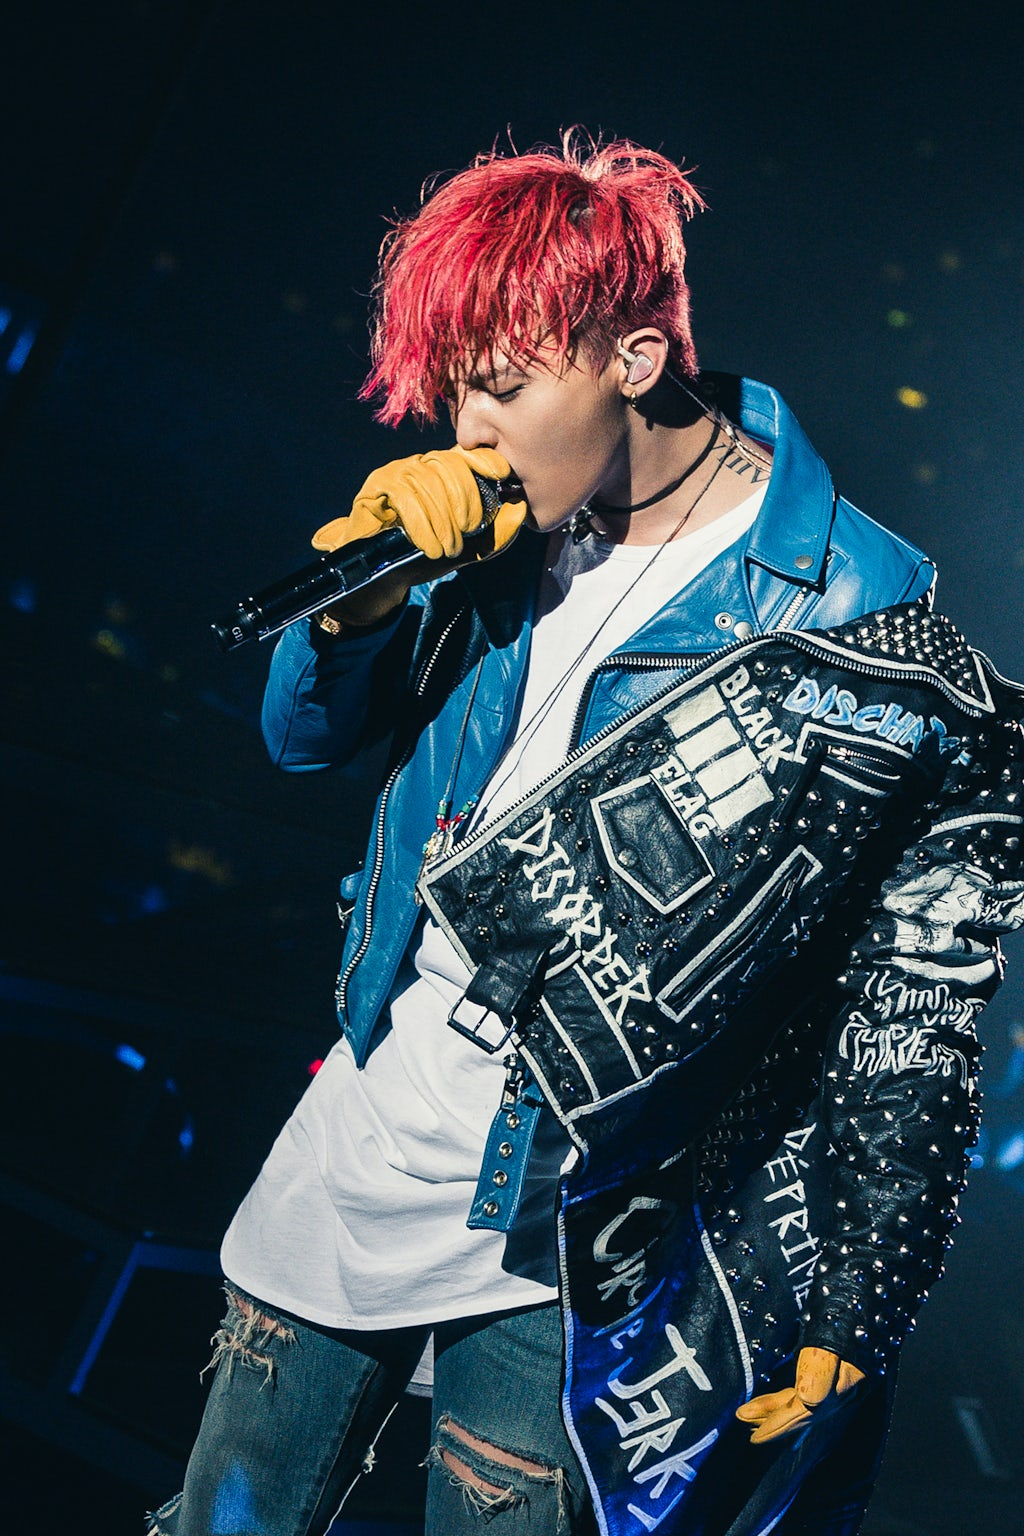 G-Dragon | Source: YG Entertainment